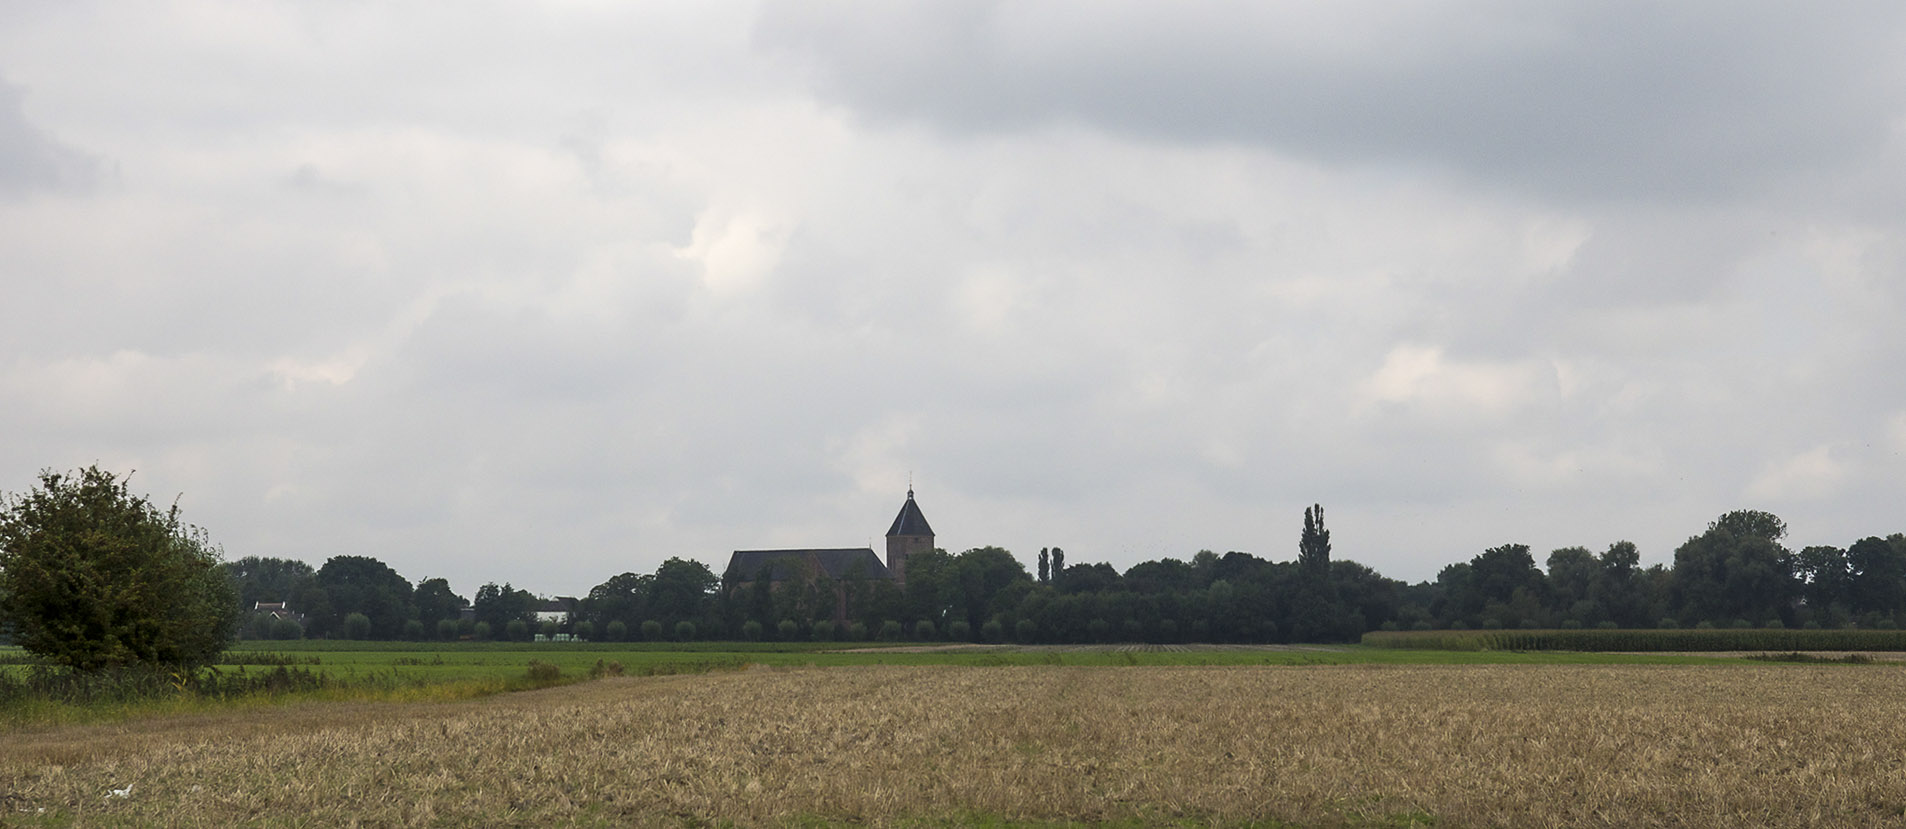 kerk in landschap